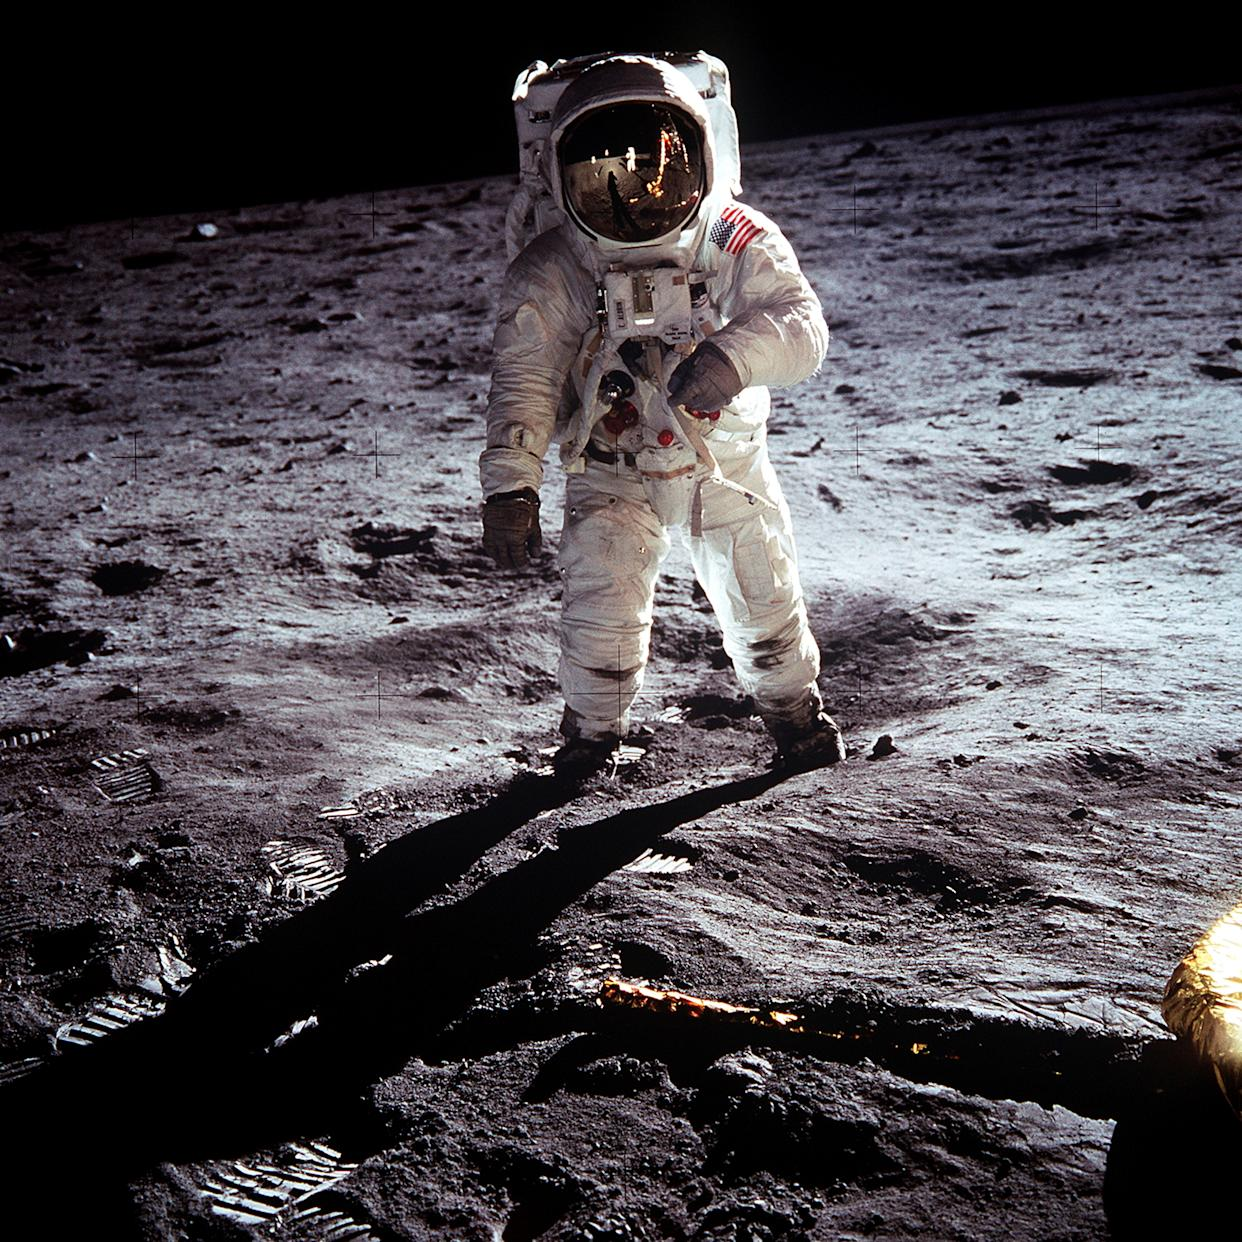 """Apollo 11 U.S. astronaut Buzz Aldrin standing on the Moon, next to the Lunar Module """"Eagle"""" (R), July 20, 1969.     REUTERS/Neil Armstrong-NASA/Handout    (UNITED STATES ANNIVERSARY SCI TECH IMAGES OF THE DAY) FOR EDITORIAL USE ONLY. NOT FOR SALE FOR MARKETING OR ADVERTISING CAMPAIGNS"""